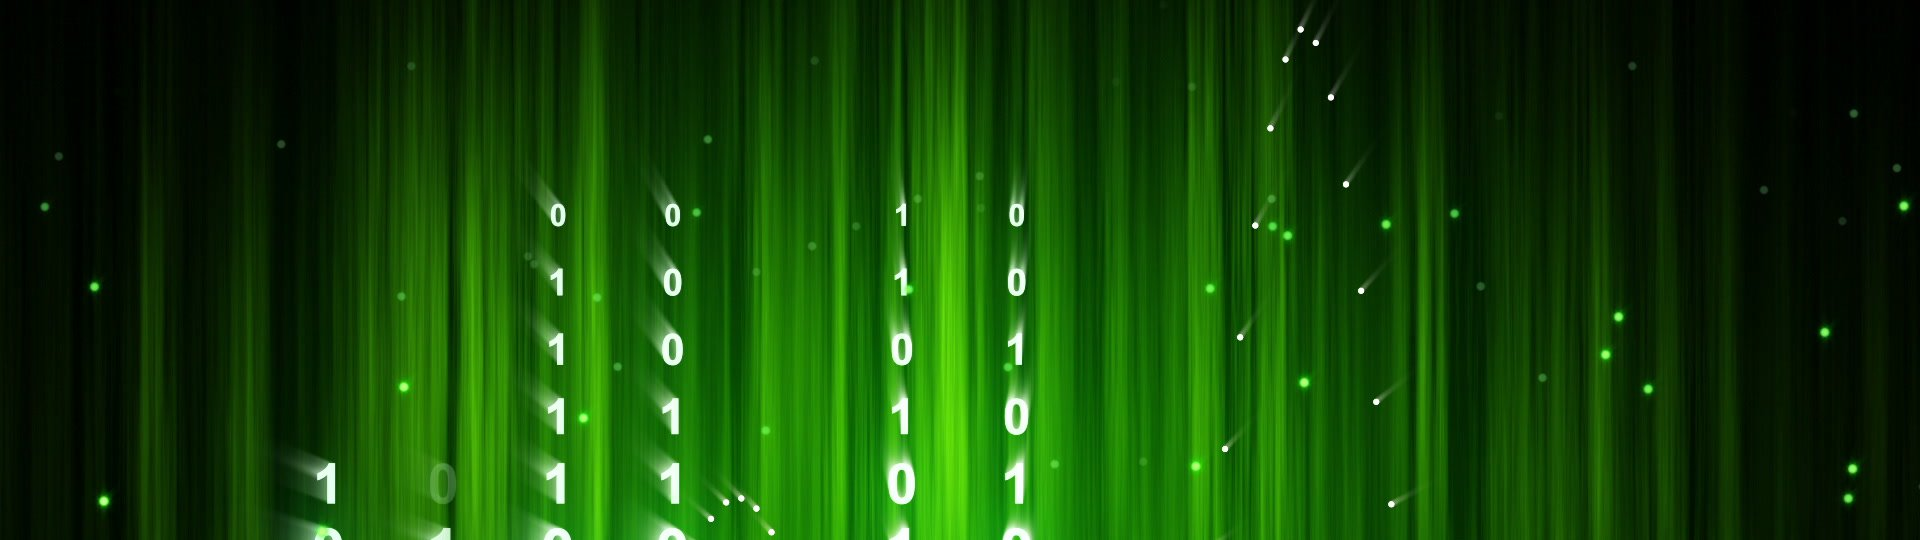 Green digital data equalizer background loop | green digital data equalizer. computer generated seamless loop abstract motion background HD 1080 progressive - ID:15021